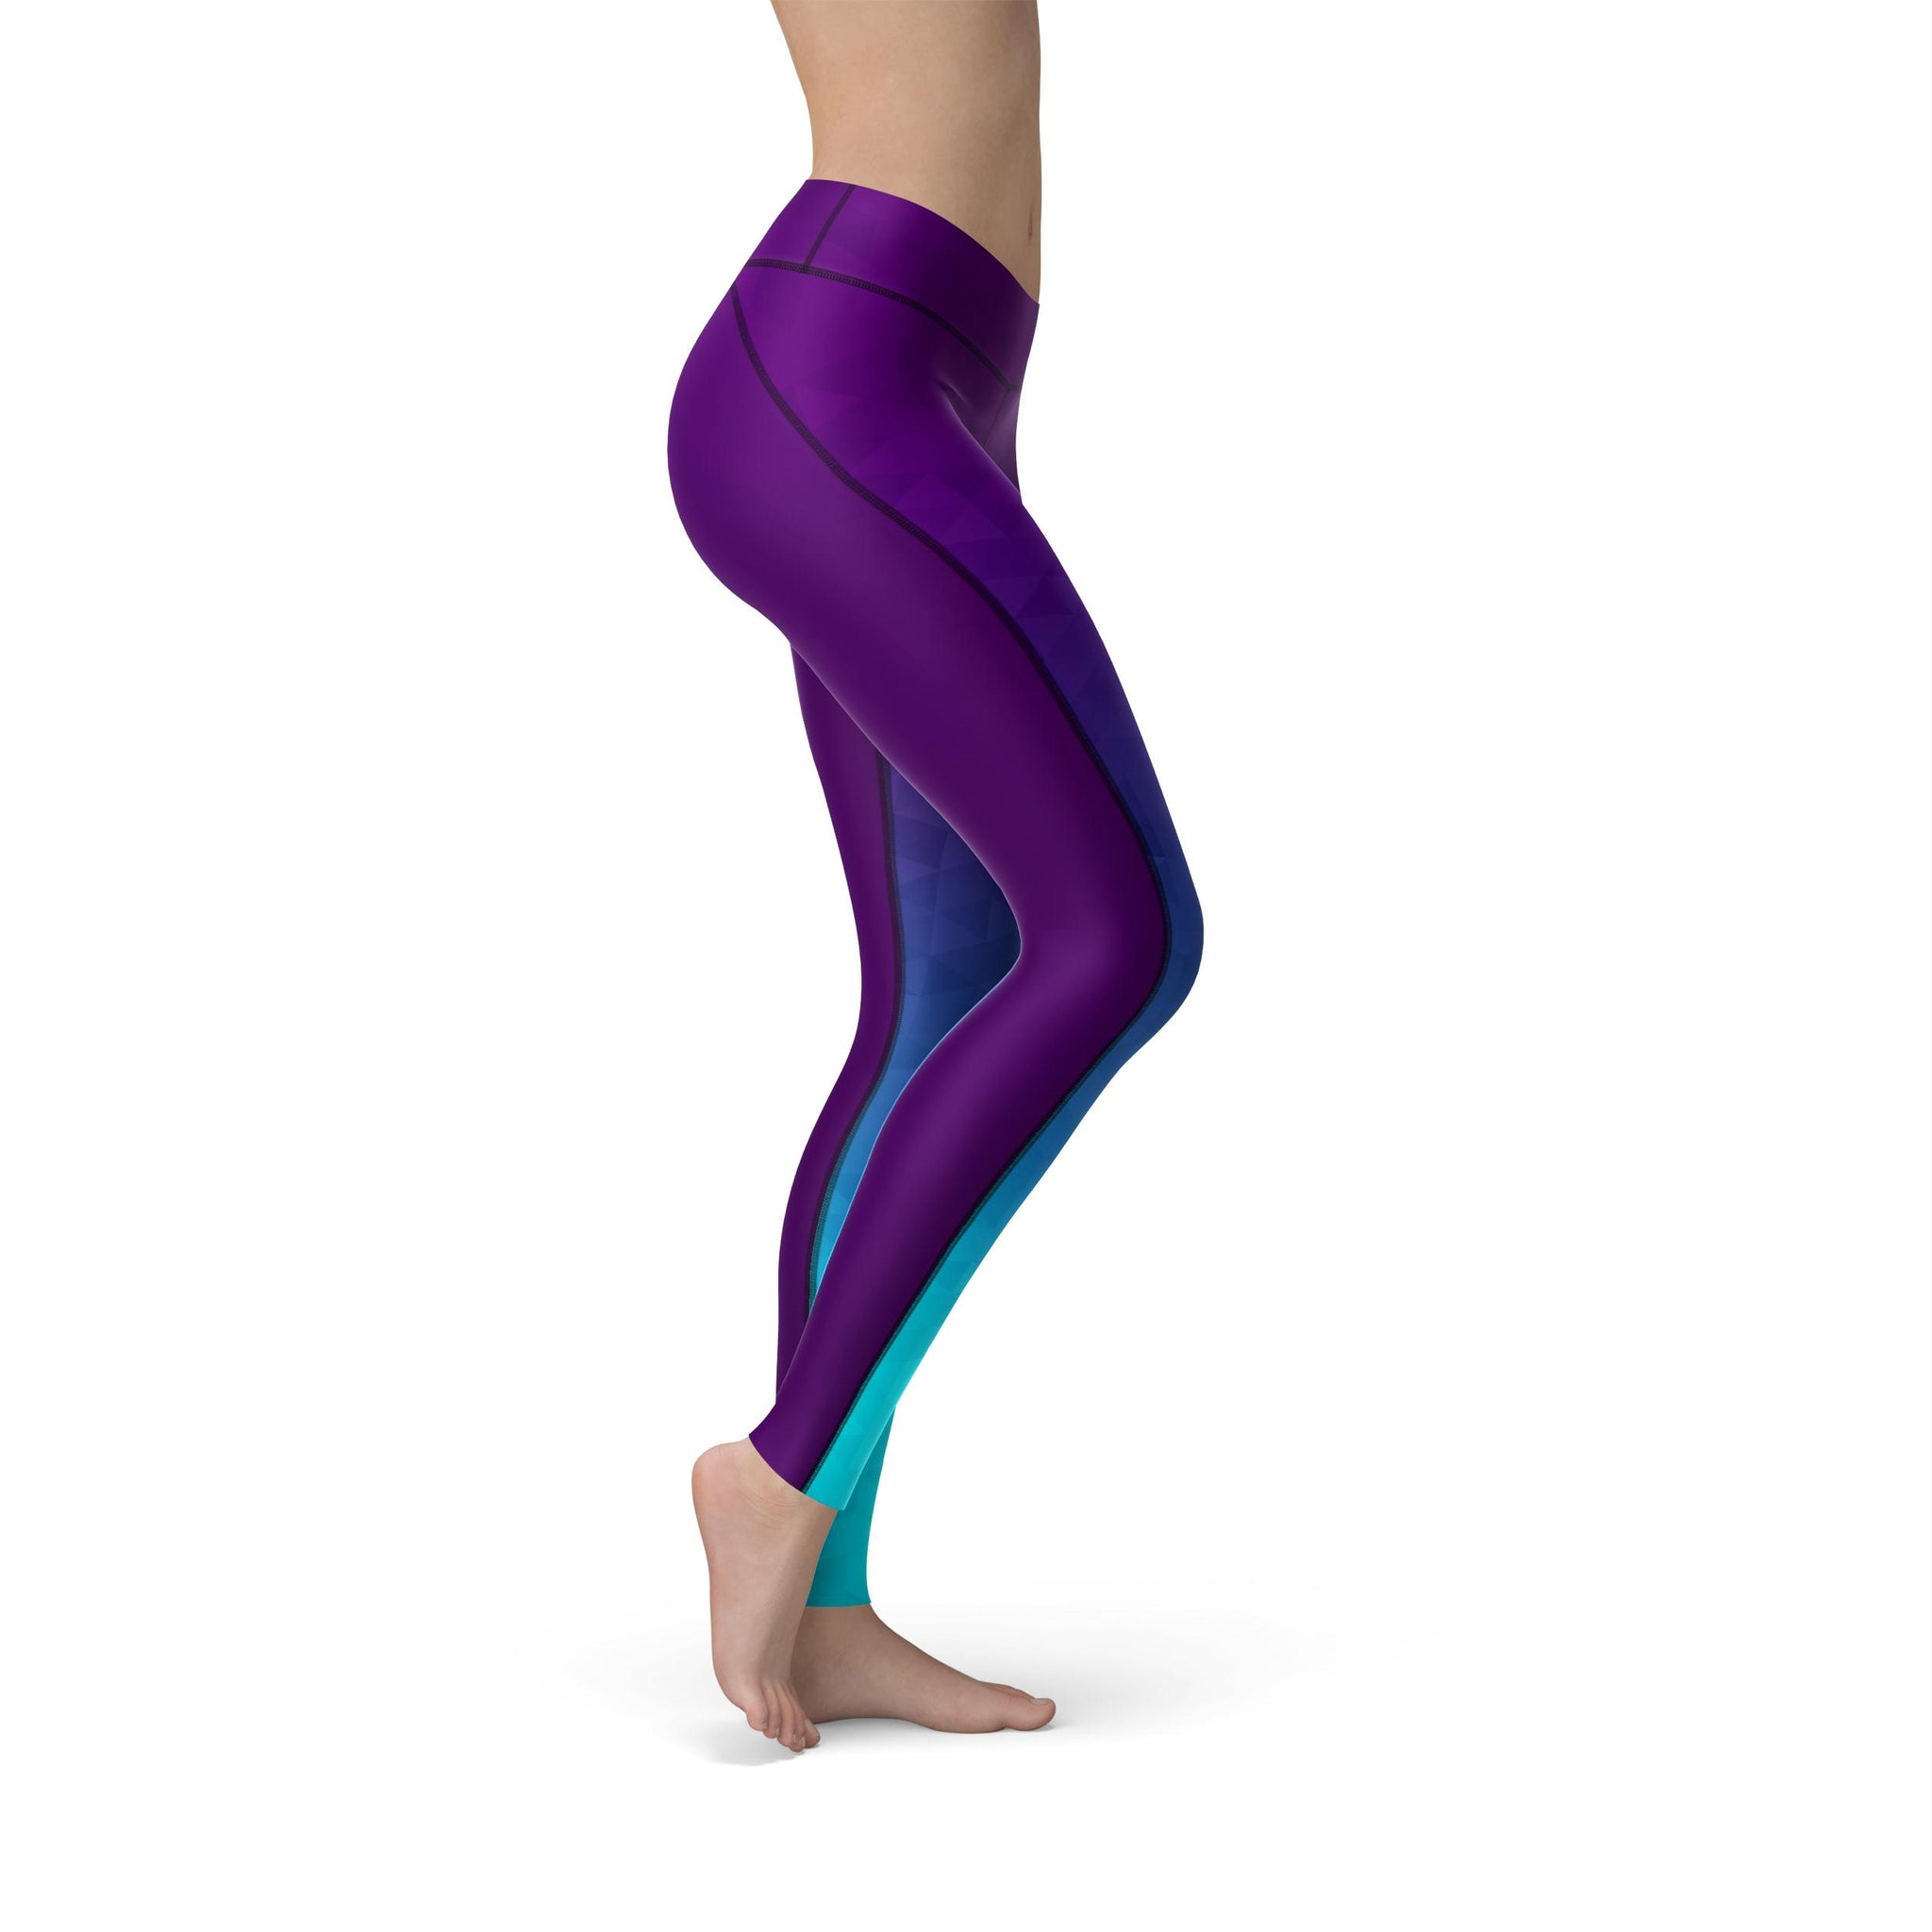 High-Waist Prism Fusion Sea Yoga Pants